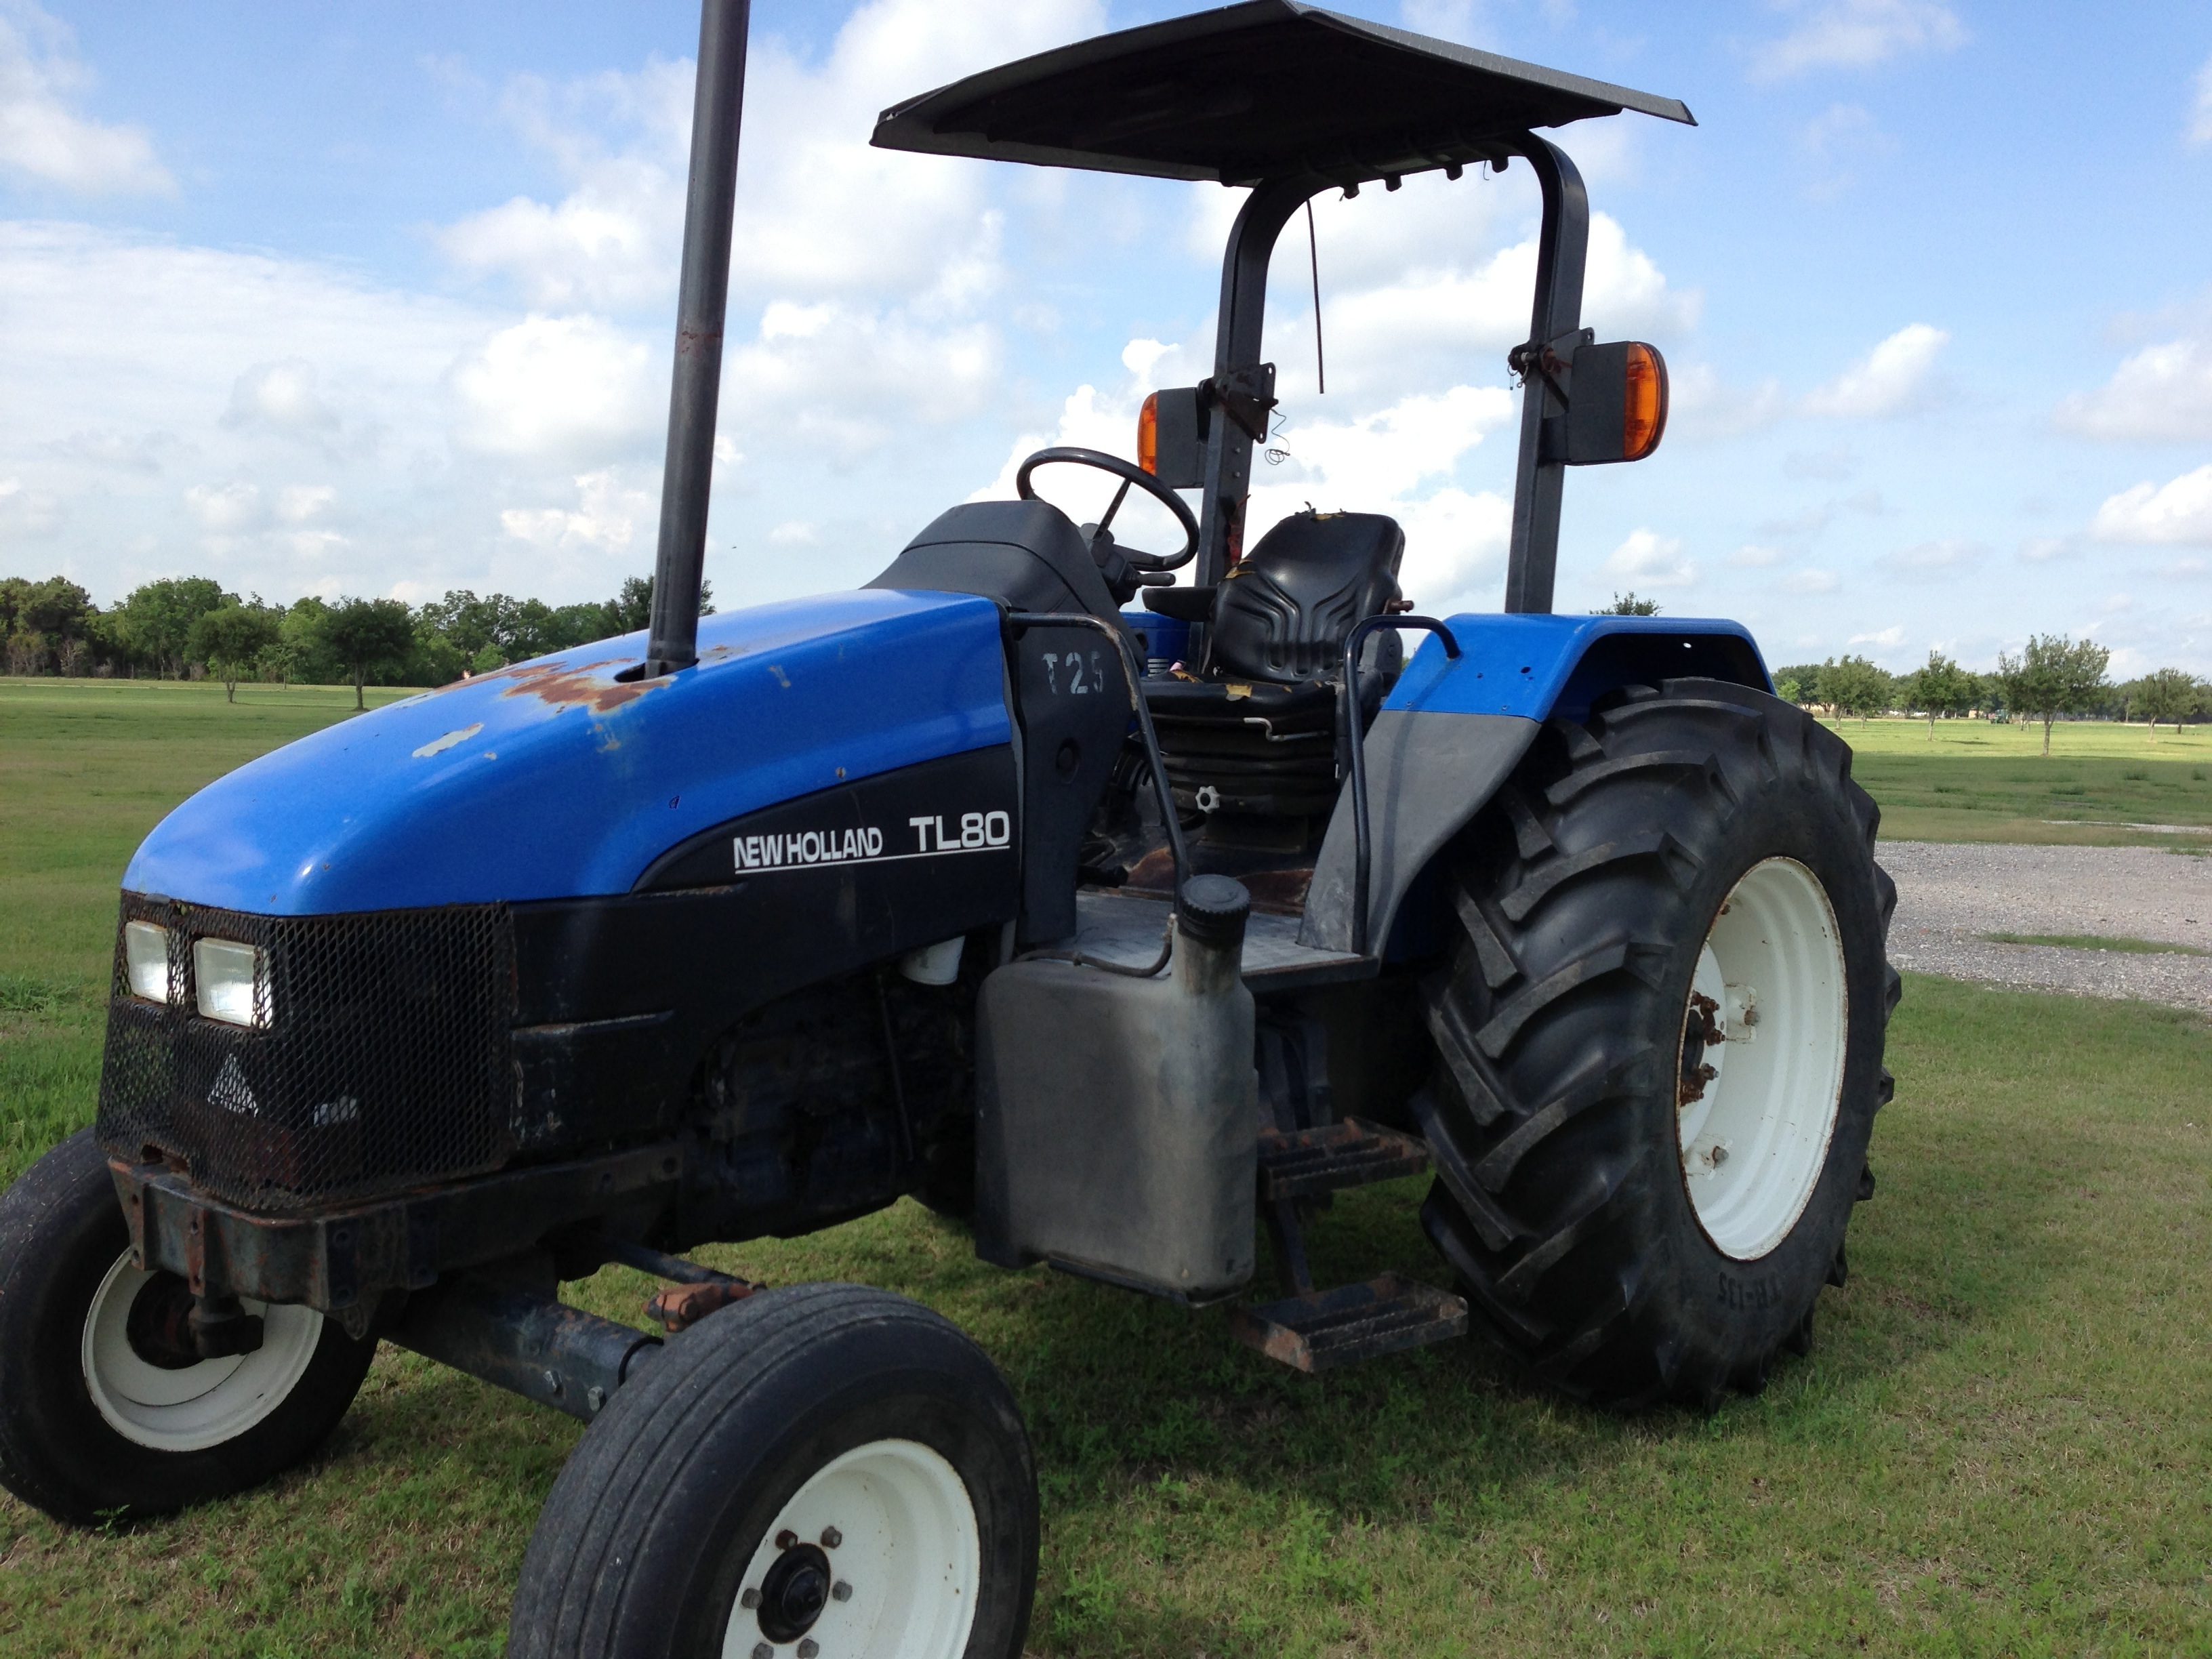 2003 New Holland TL-80 Tractor For Sale – Update – Sold